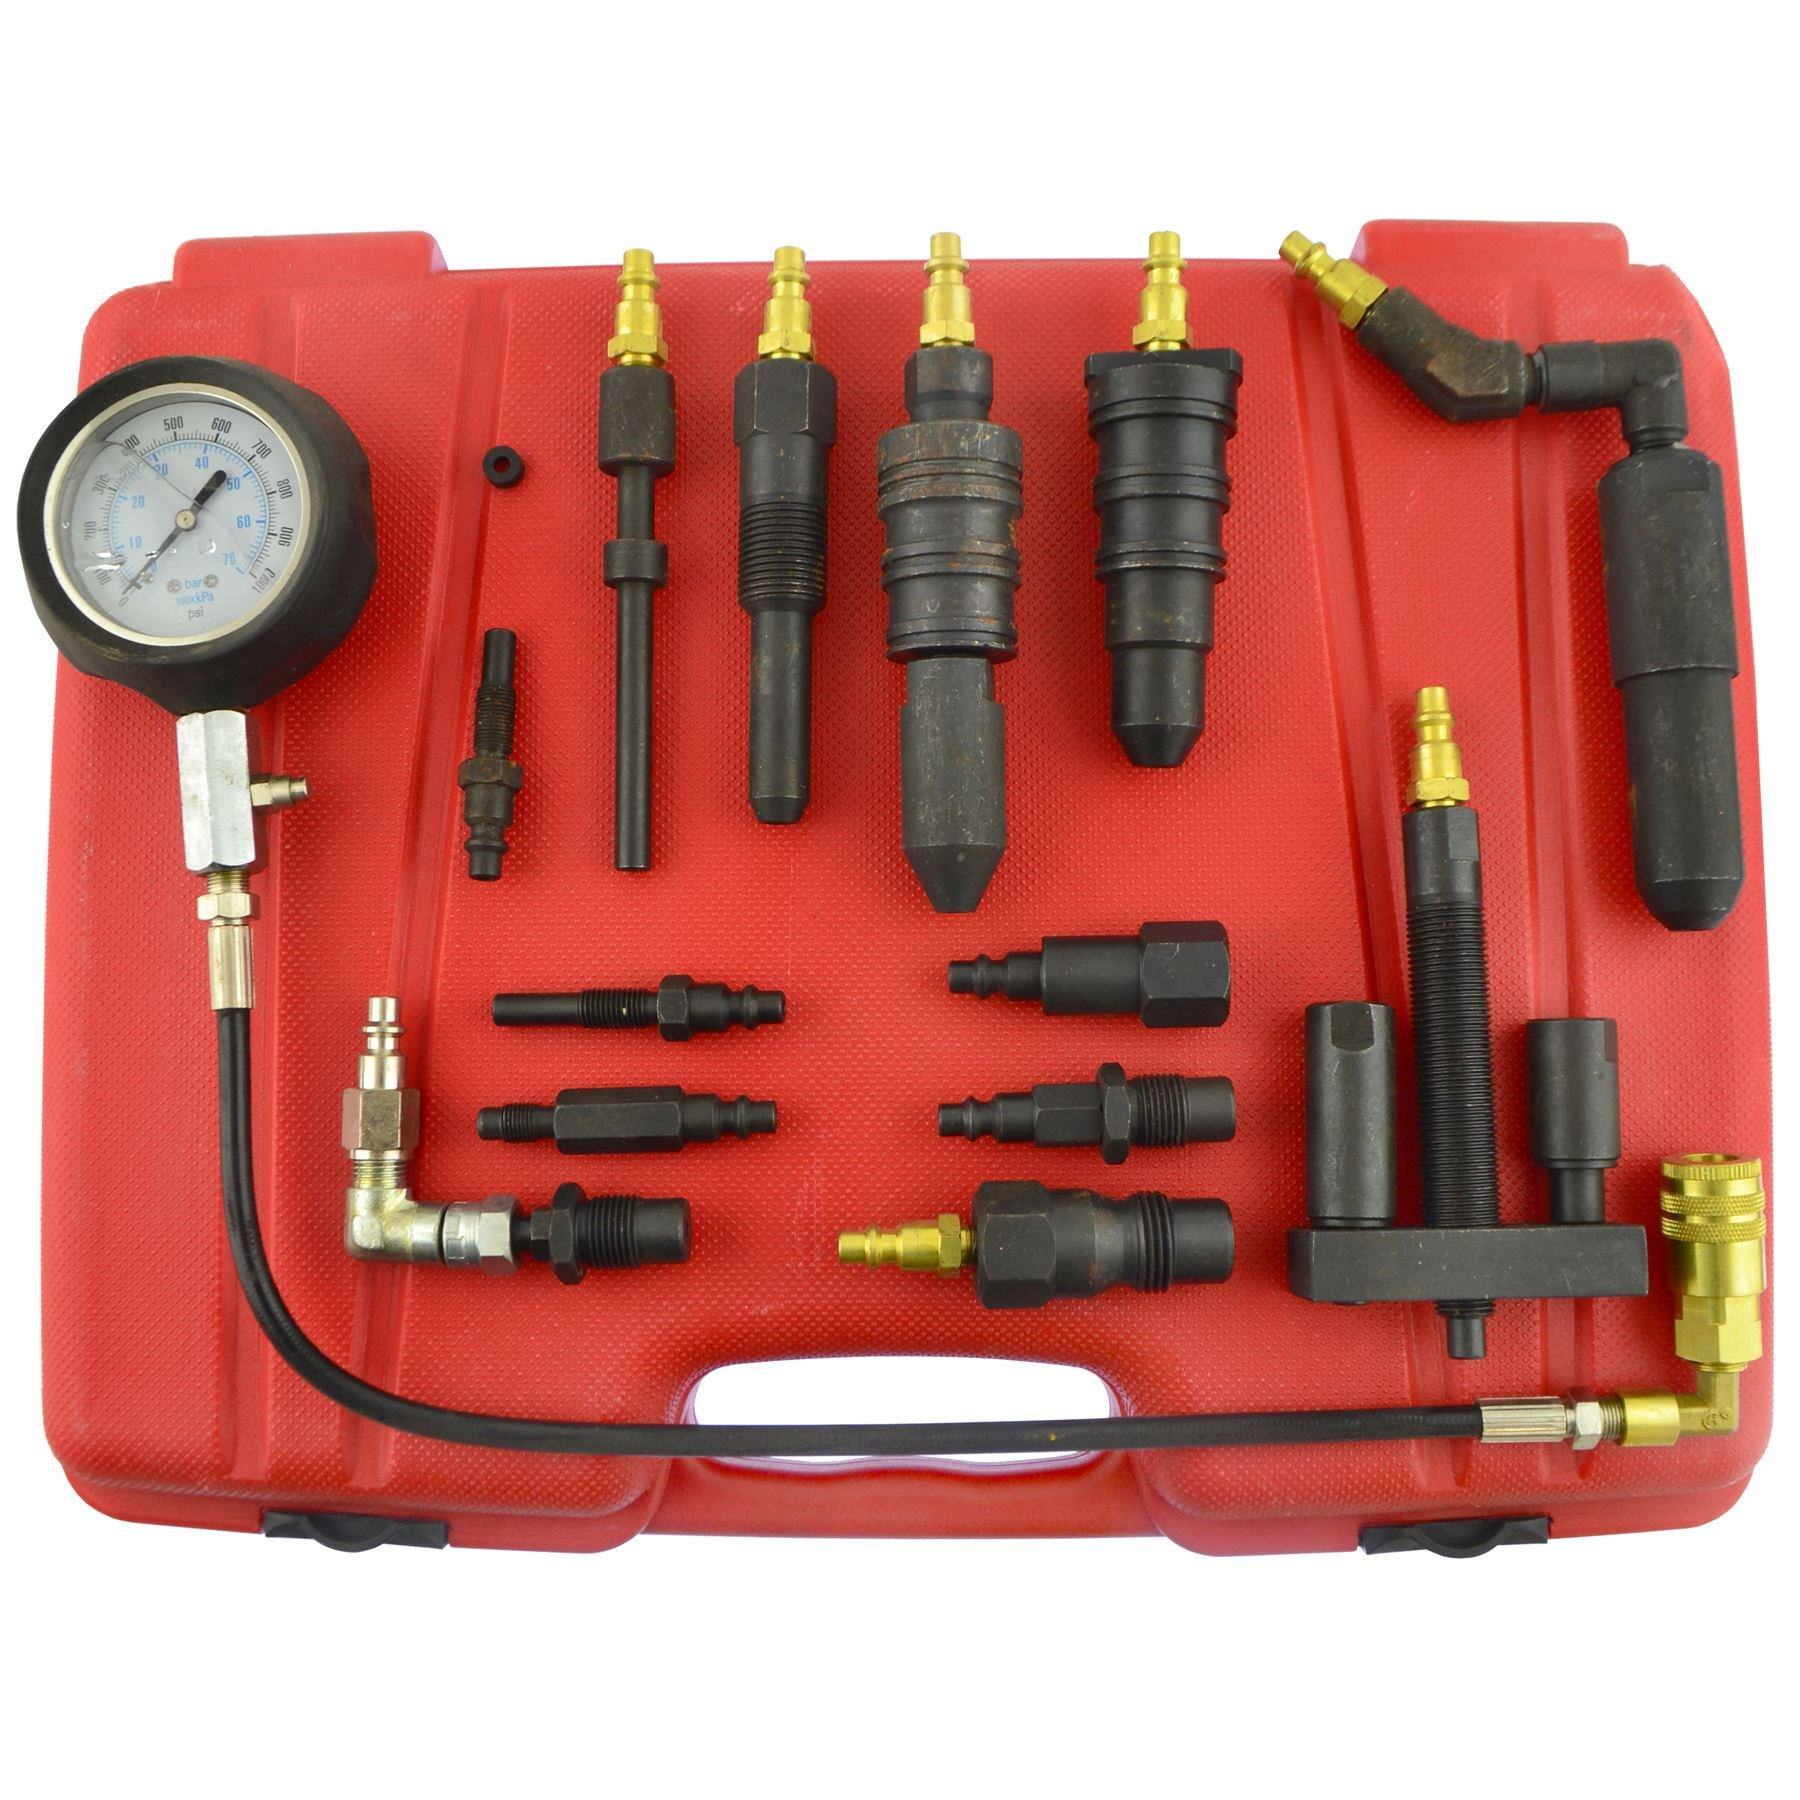 AB Tools-Neilsen Diesel Engine Cylinder Compression Tester Master Kit Direct/Indirect Injection by AB Tools-Neilsen (Image #2)